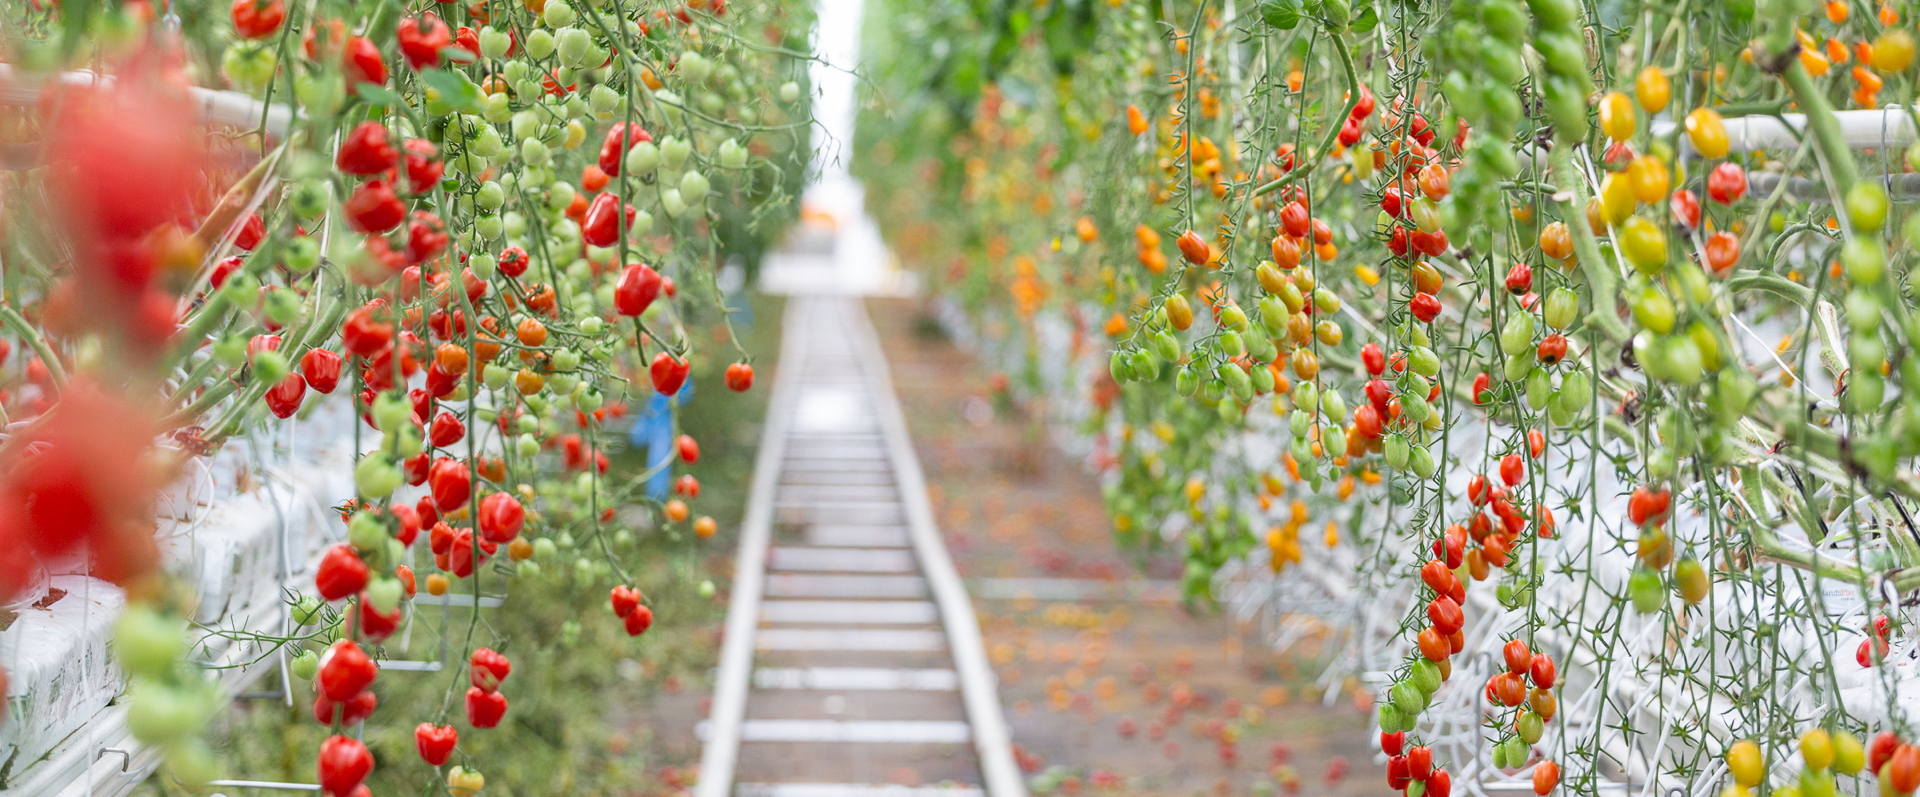 Lufa Farms 0km Fruit And Vegetables In Montreal Livegreenblog